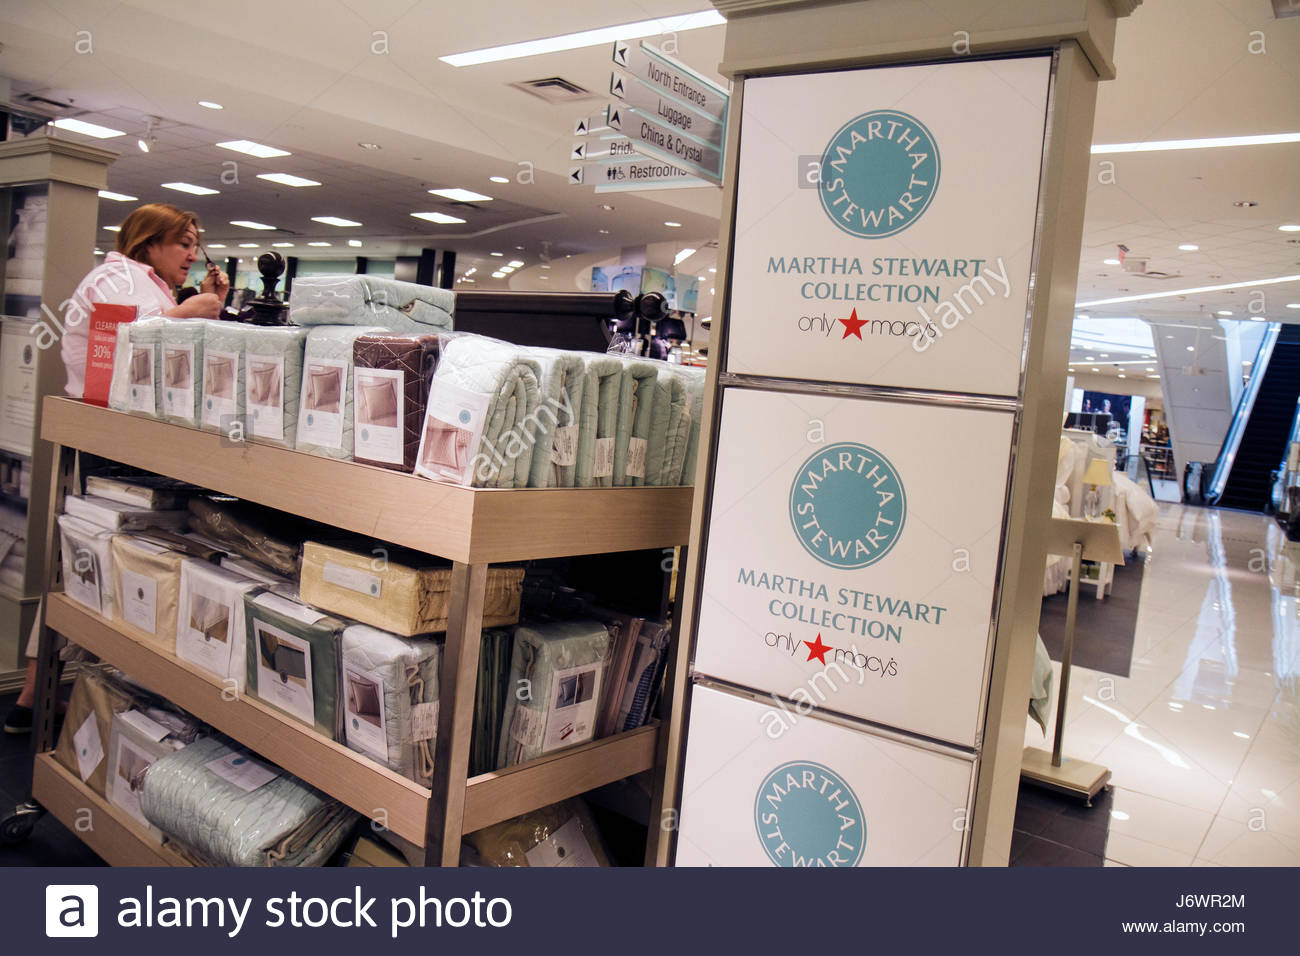 Bed Display In Store Photos Bed Display In Store Images Alamy